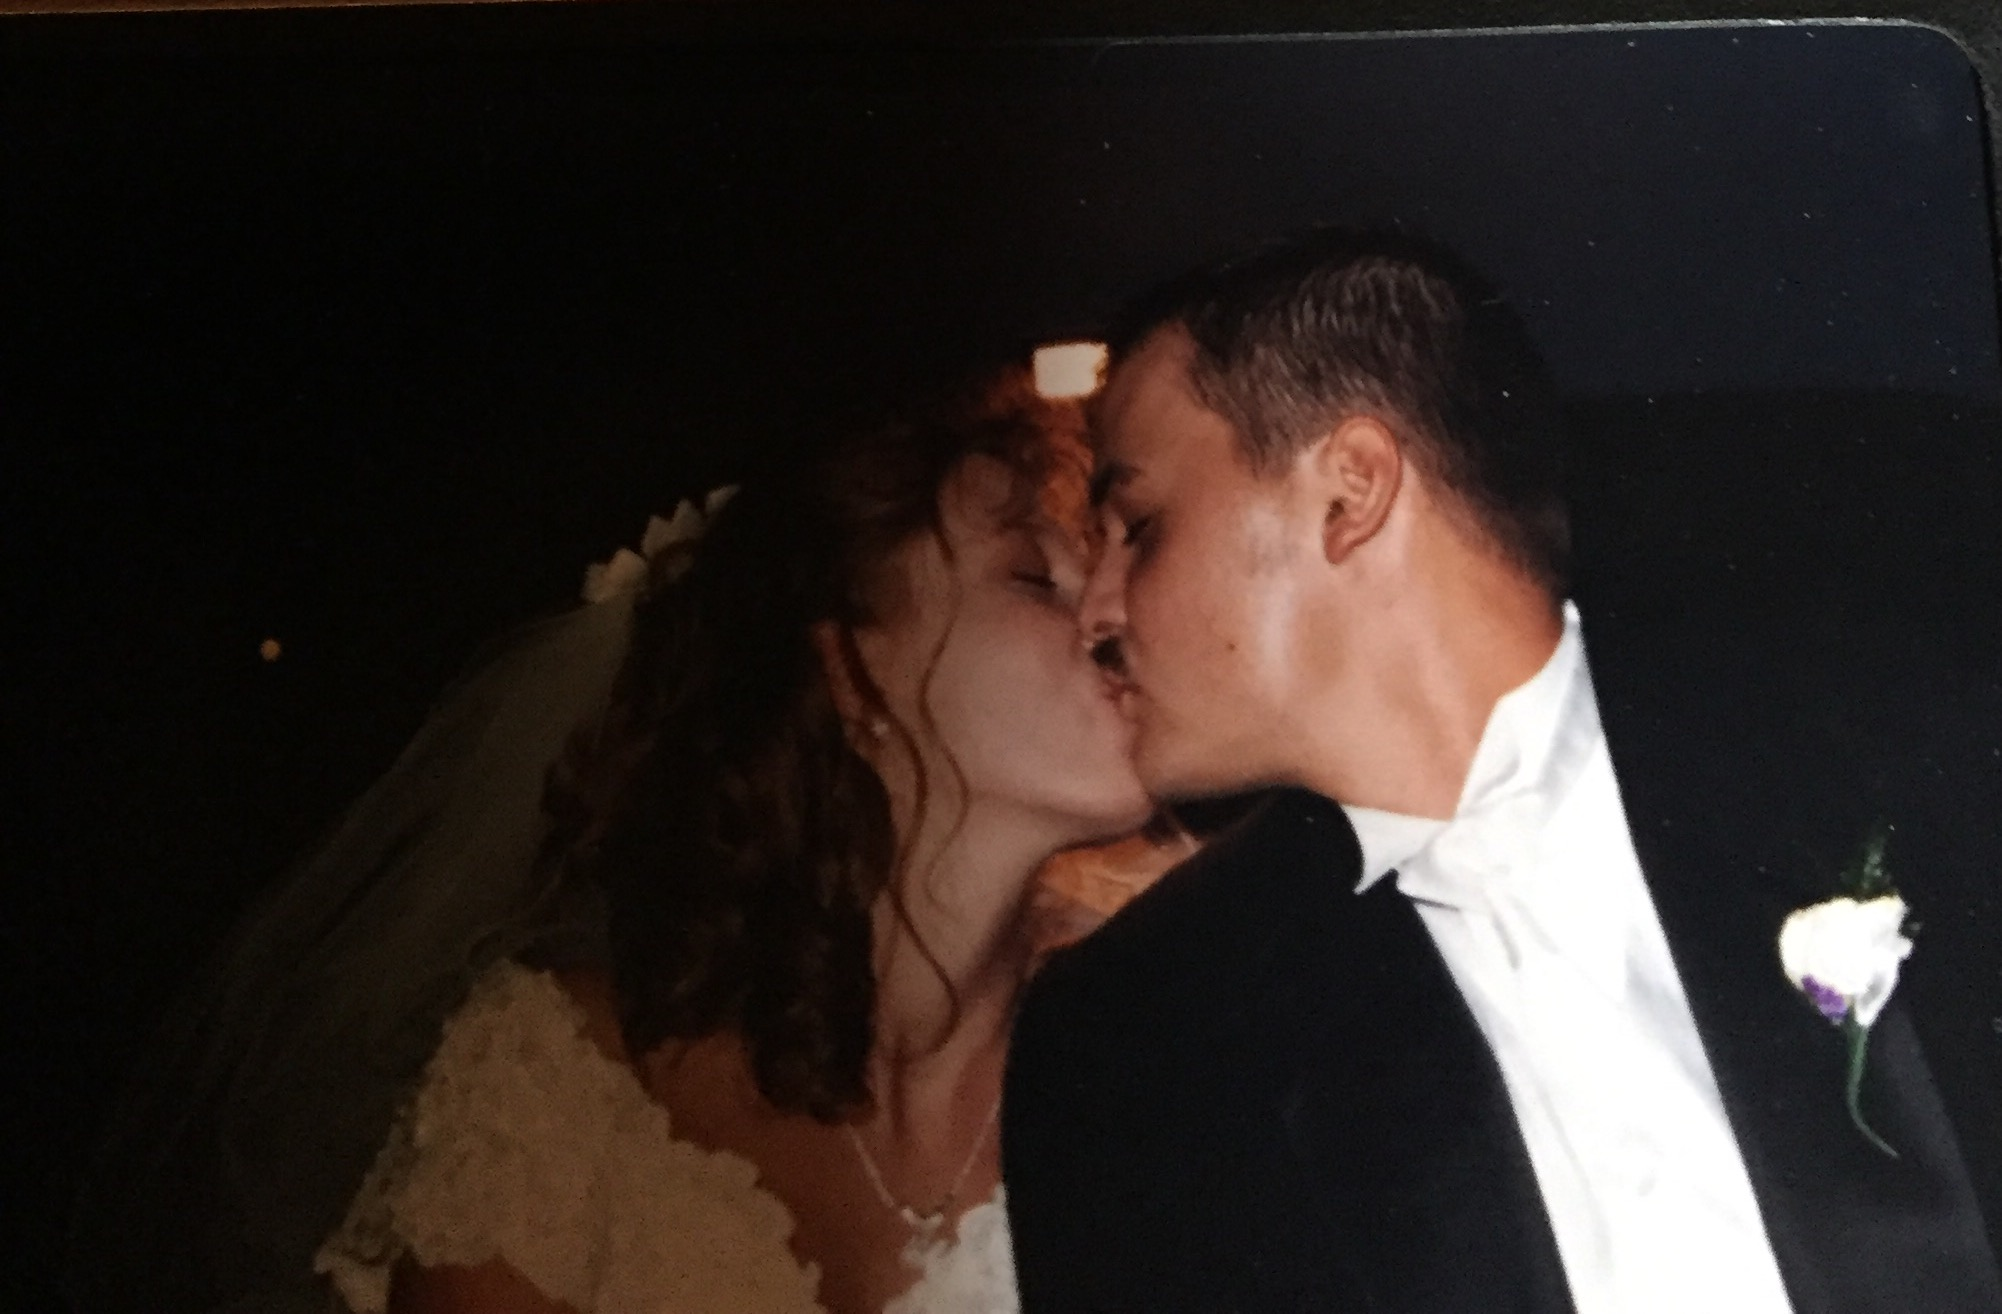 Our first kiss after the kiss at the alter.  We were headed to the reception.  Praise Jesus we are still kissing today!